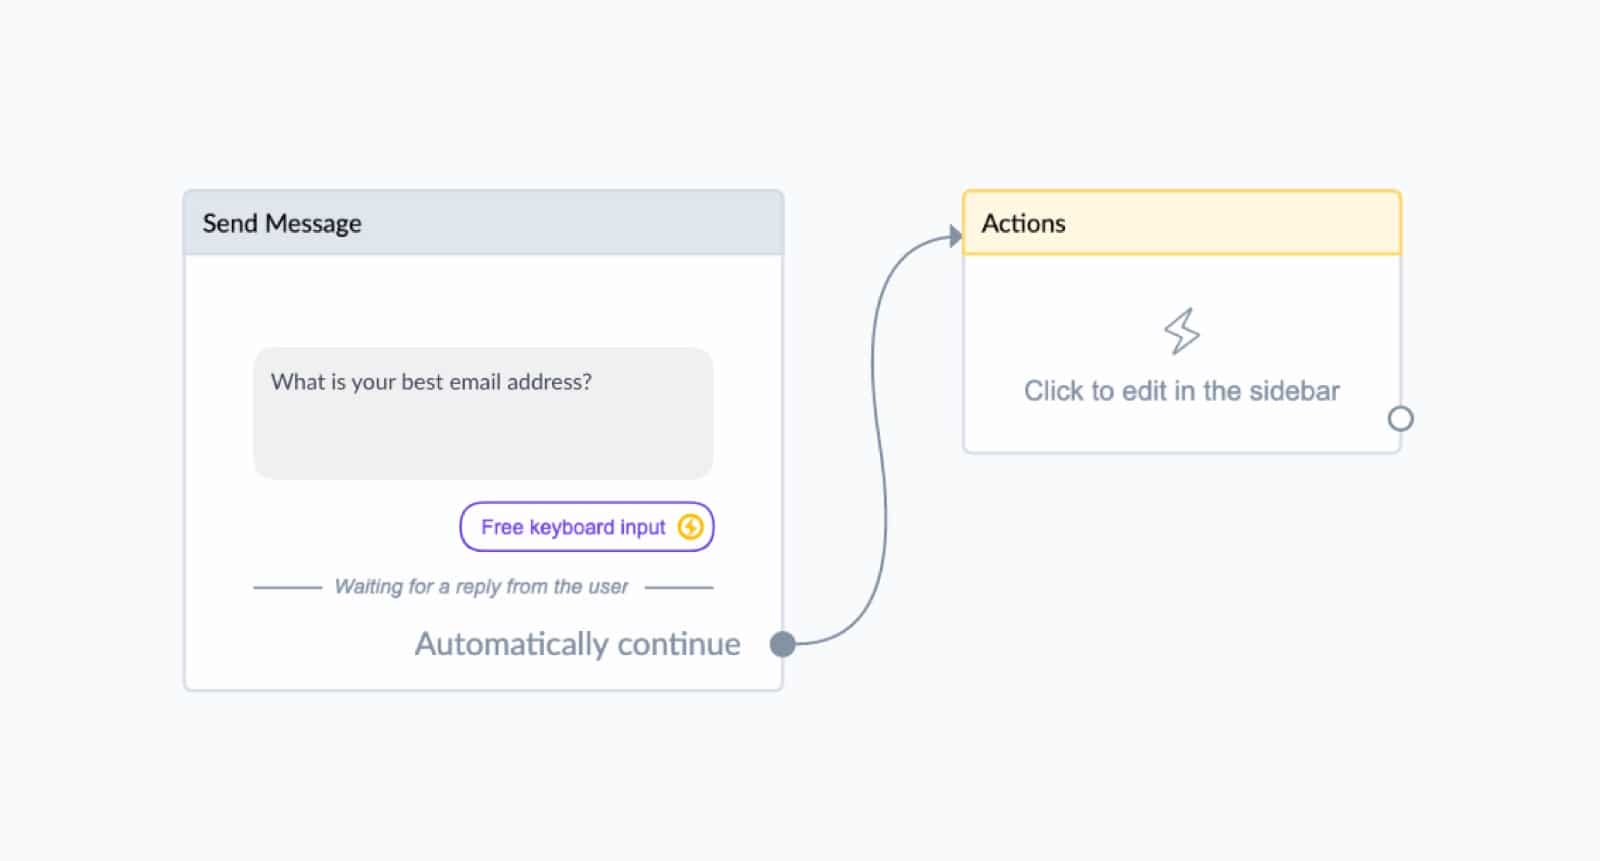 Automatically continue to an action step in ManyChat